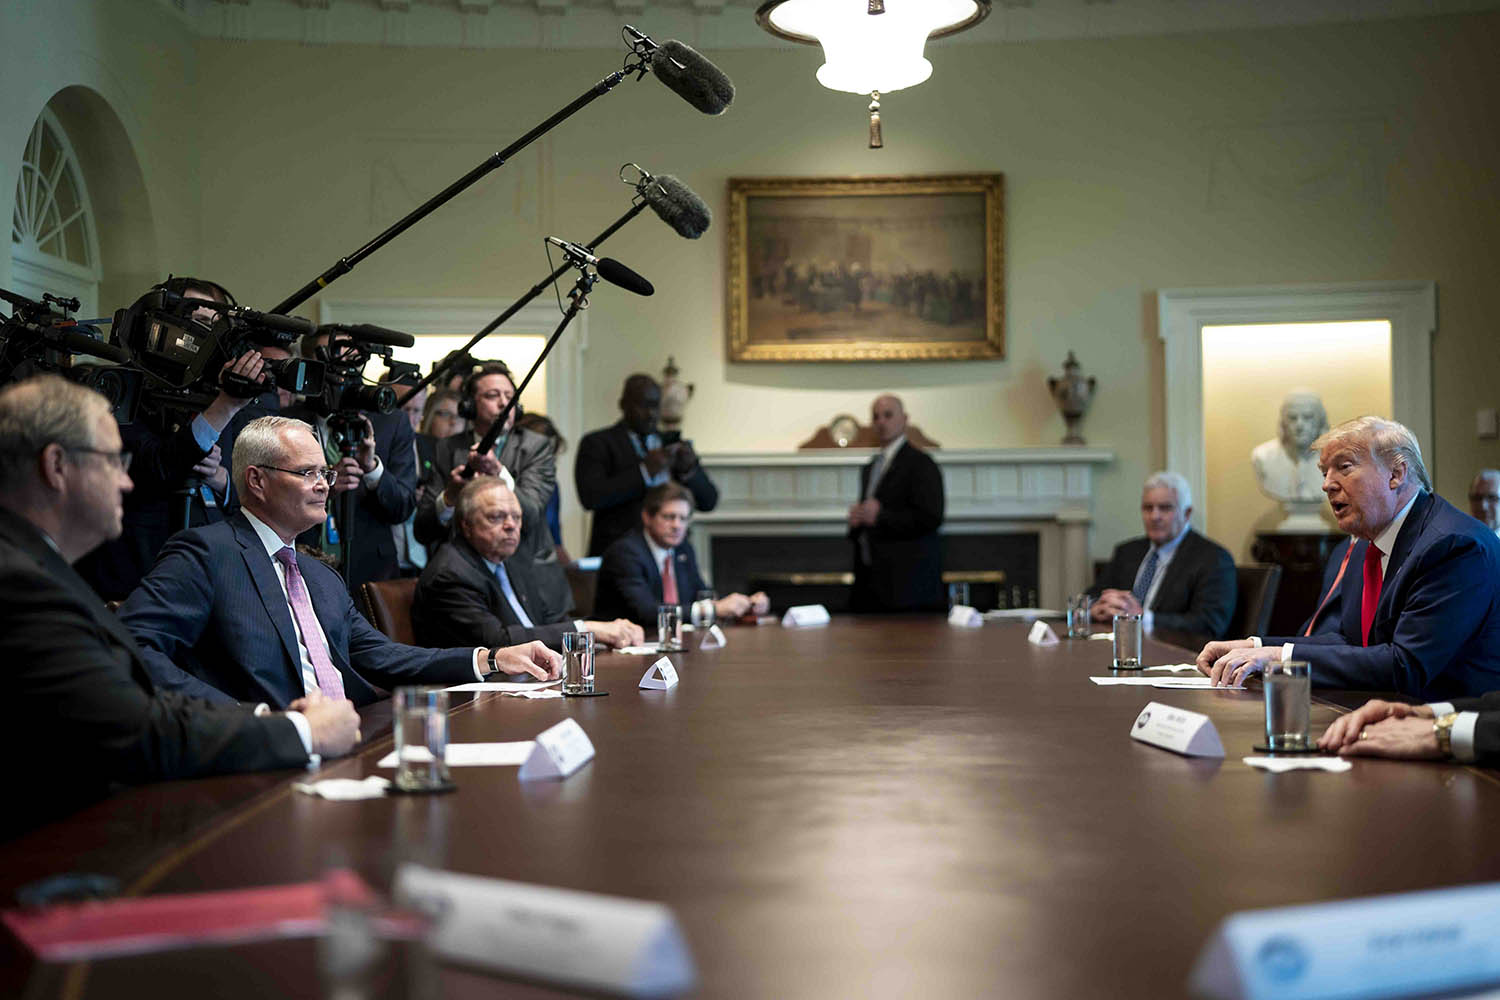 U.S. President Donald Trump speaks during a roundtable meeting with energy sector CEOs at the White House in Washington on April 3.